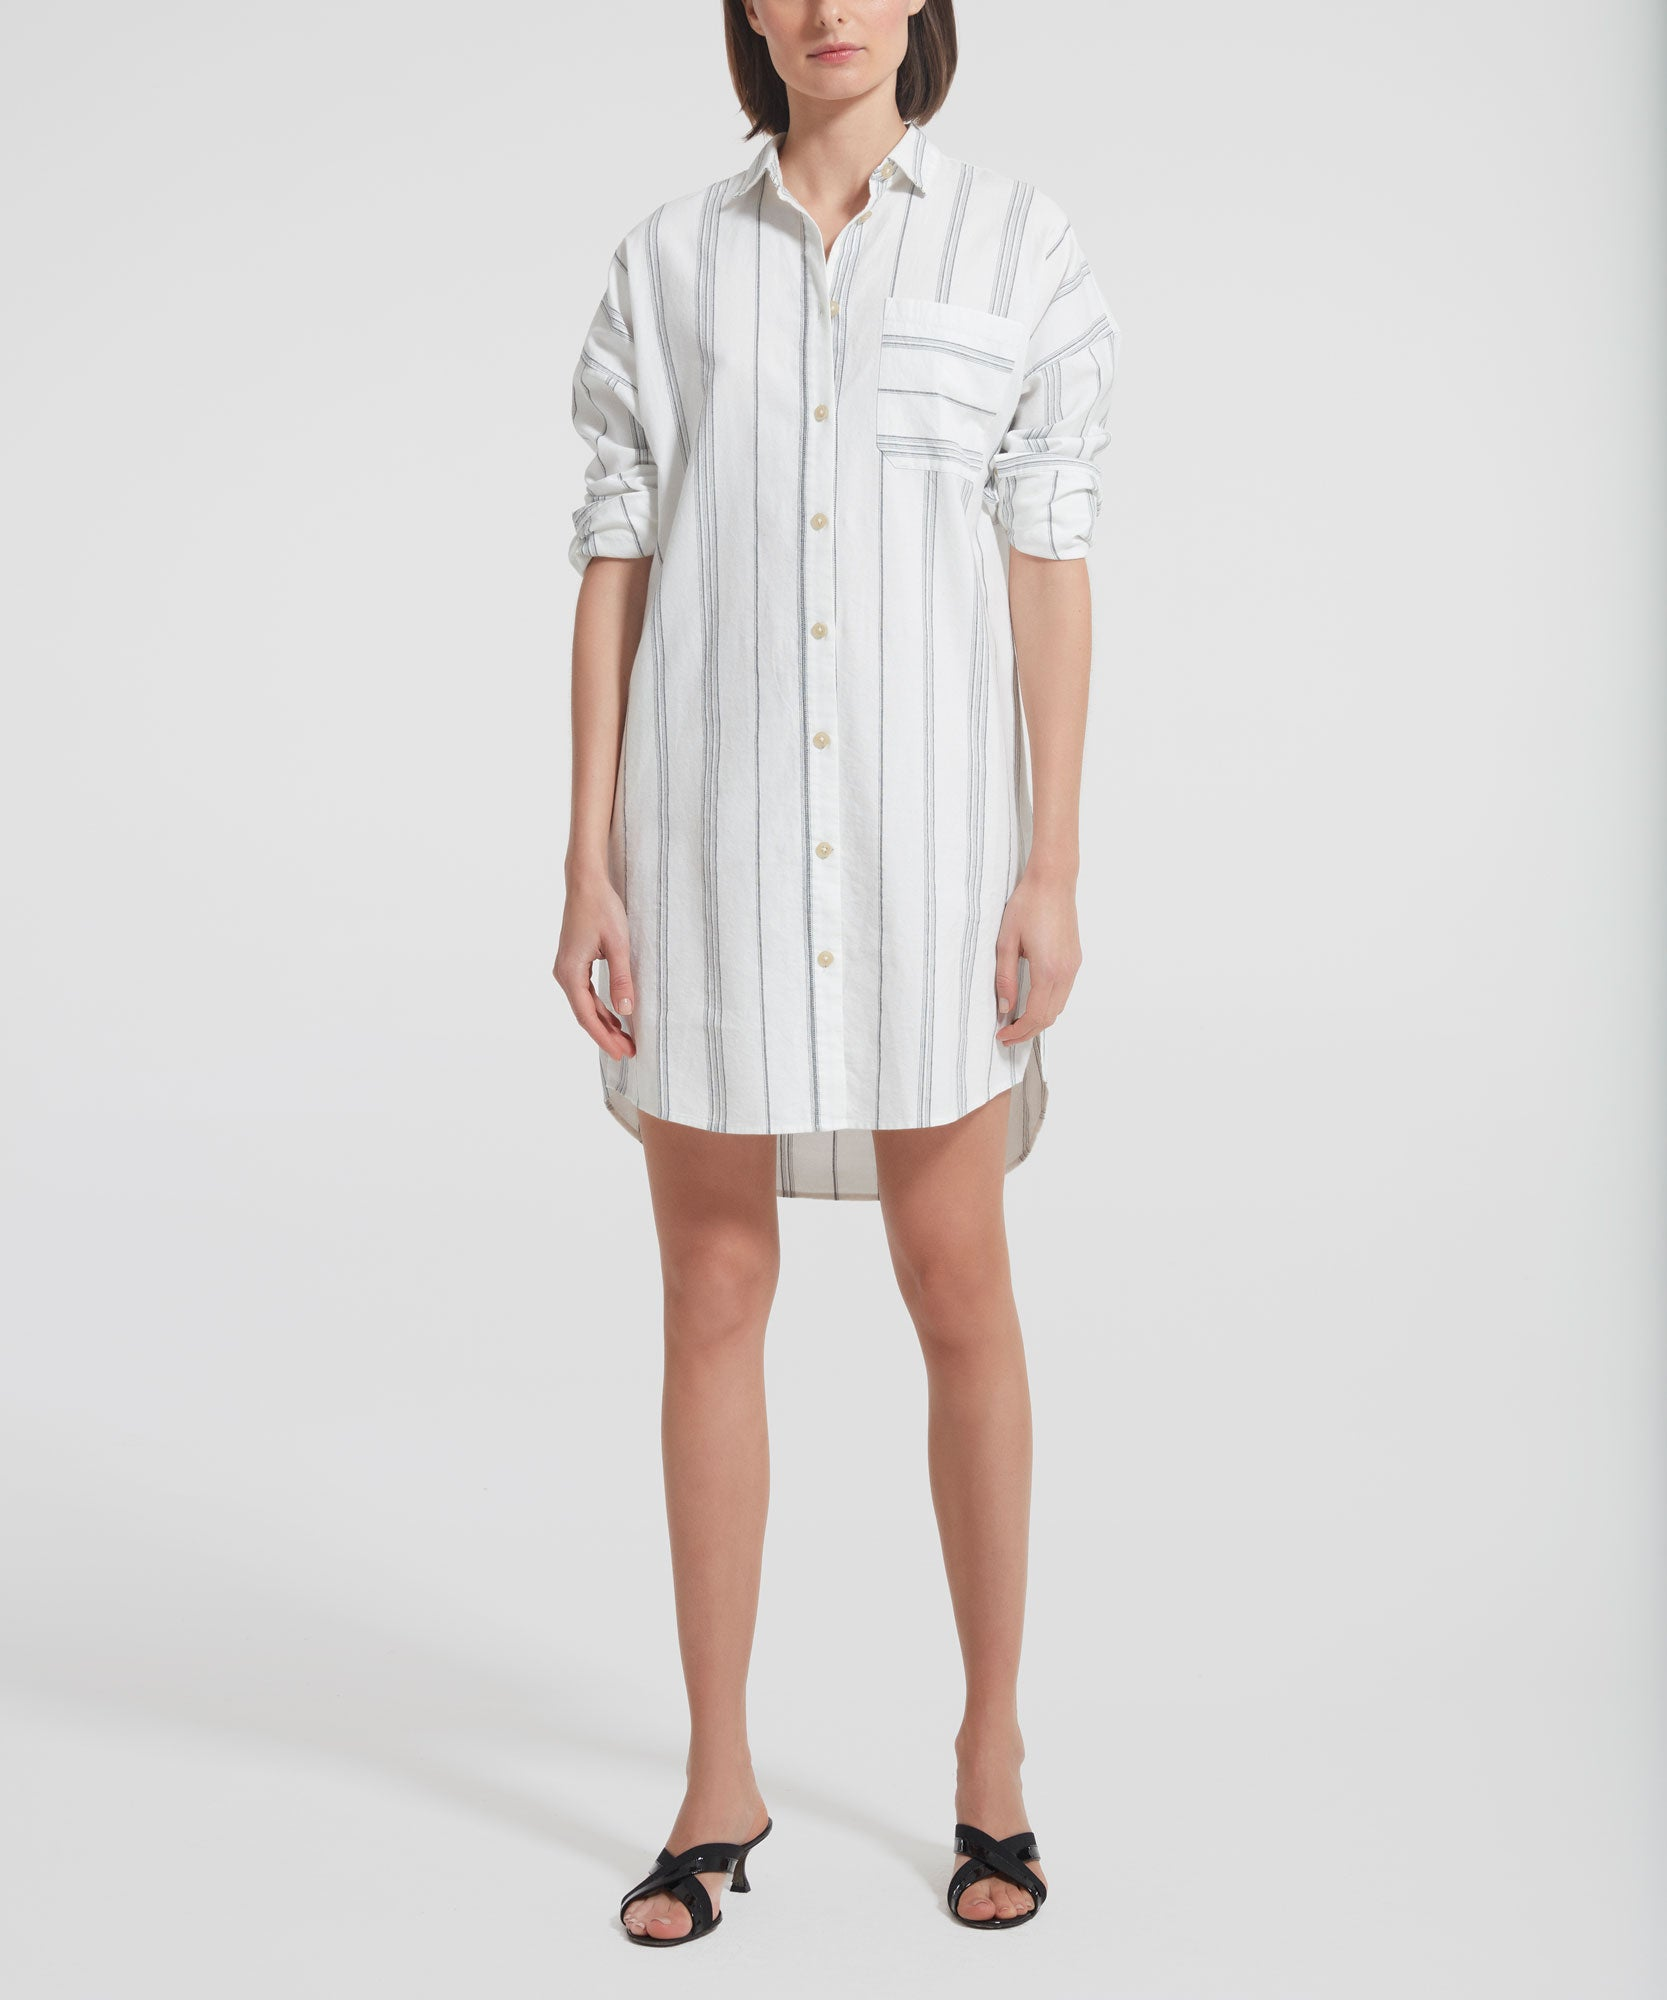 Cream Stripe Shirt Dress - Women's Casual Dress by ATM Anthony Thomas Melillo